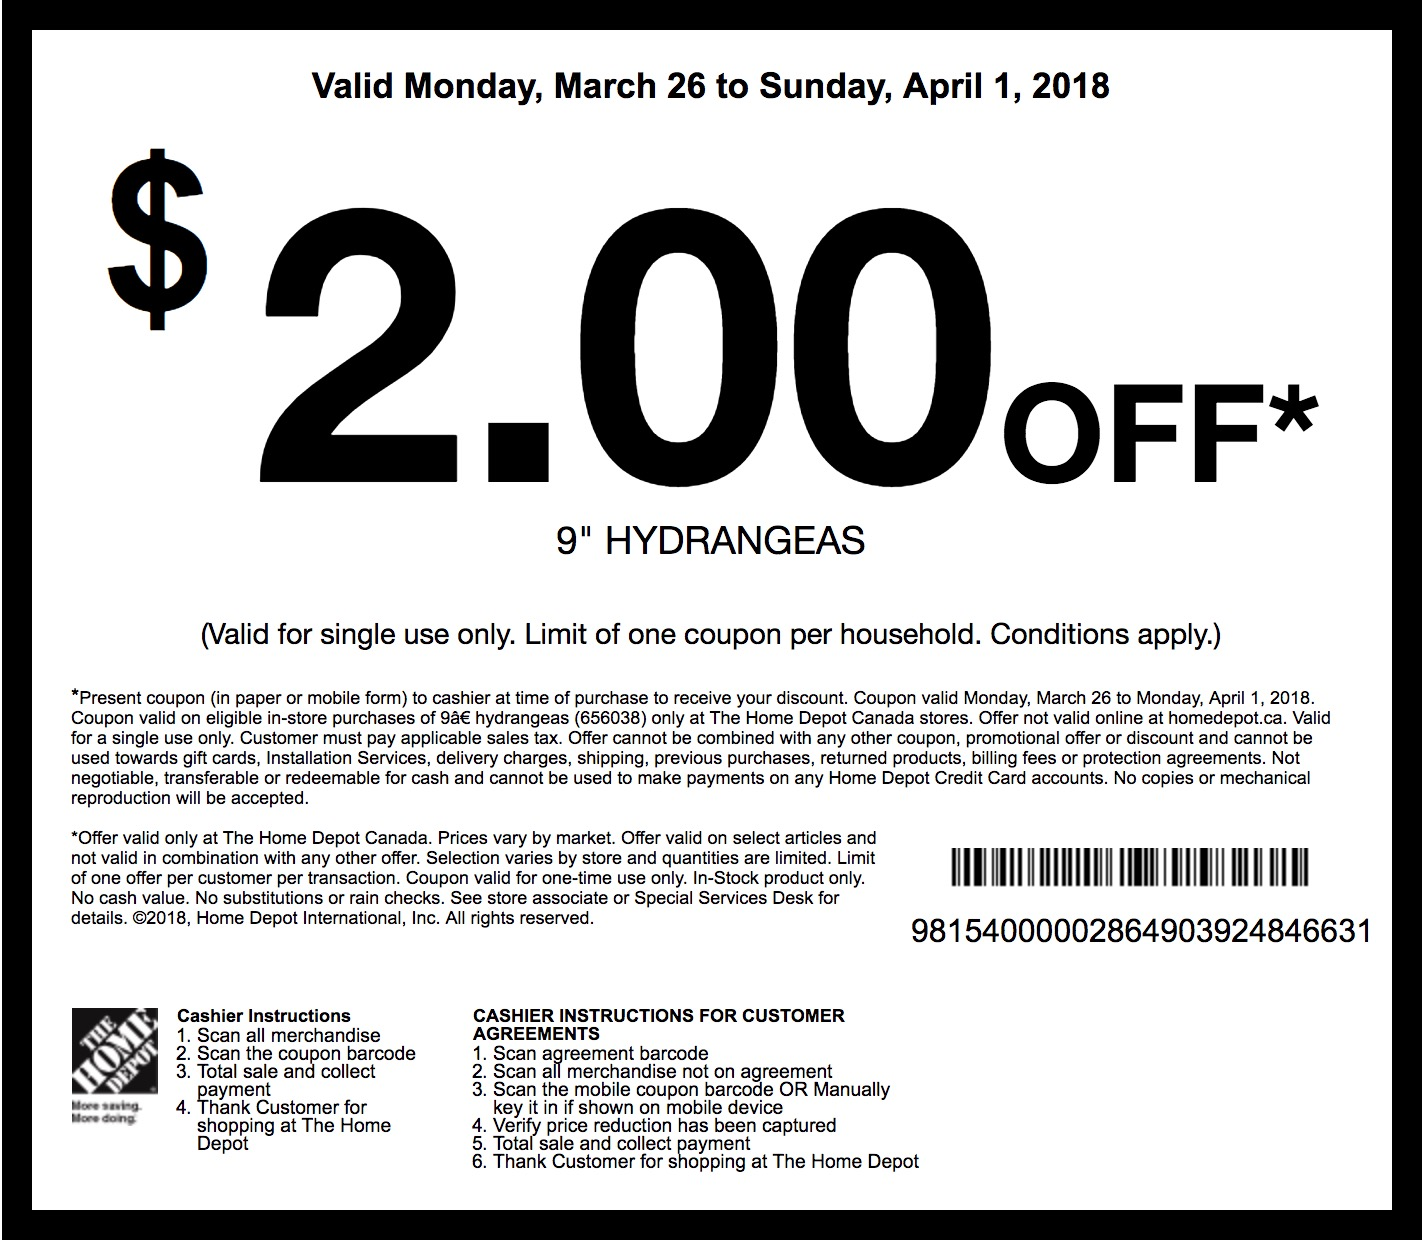 Home depot grill coupons 2018